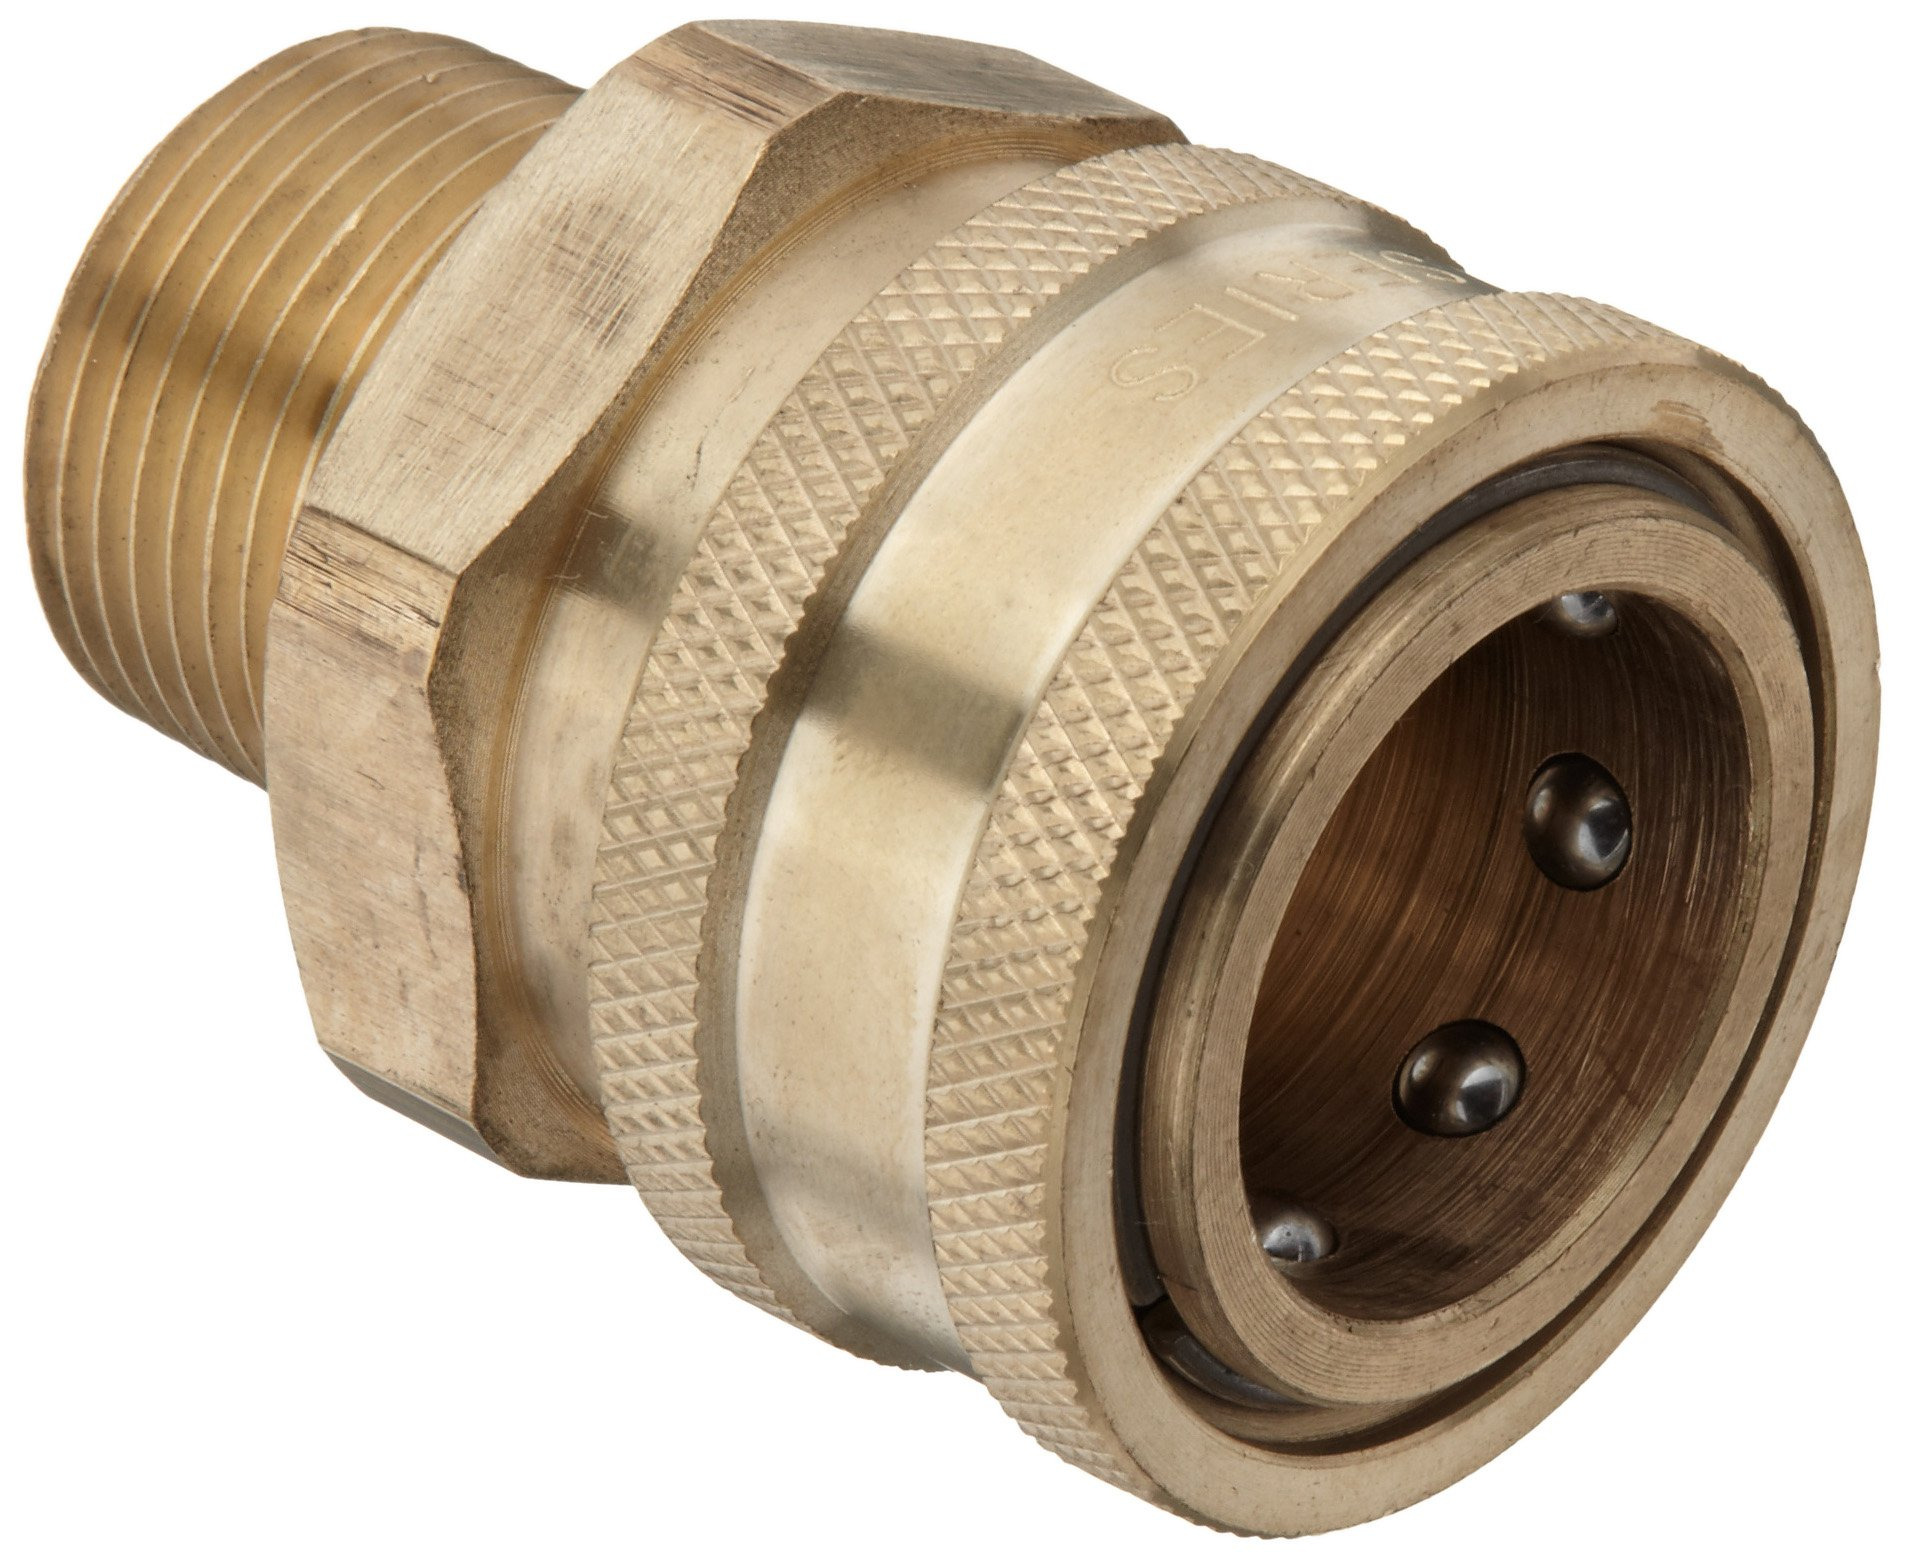 Dixon STMC6 Brass Hydraulic Quick-Connect Fitting, 3/4'' Male Coupling x 3/4''-14 Straight